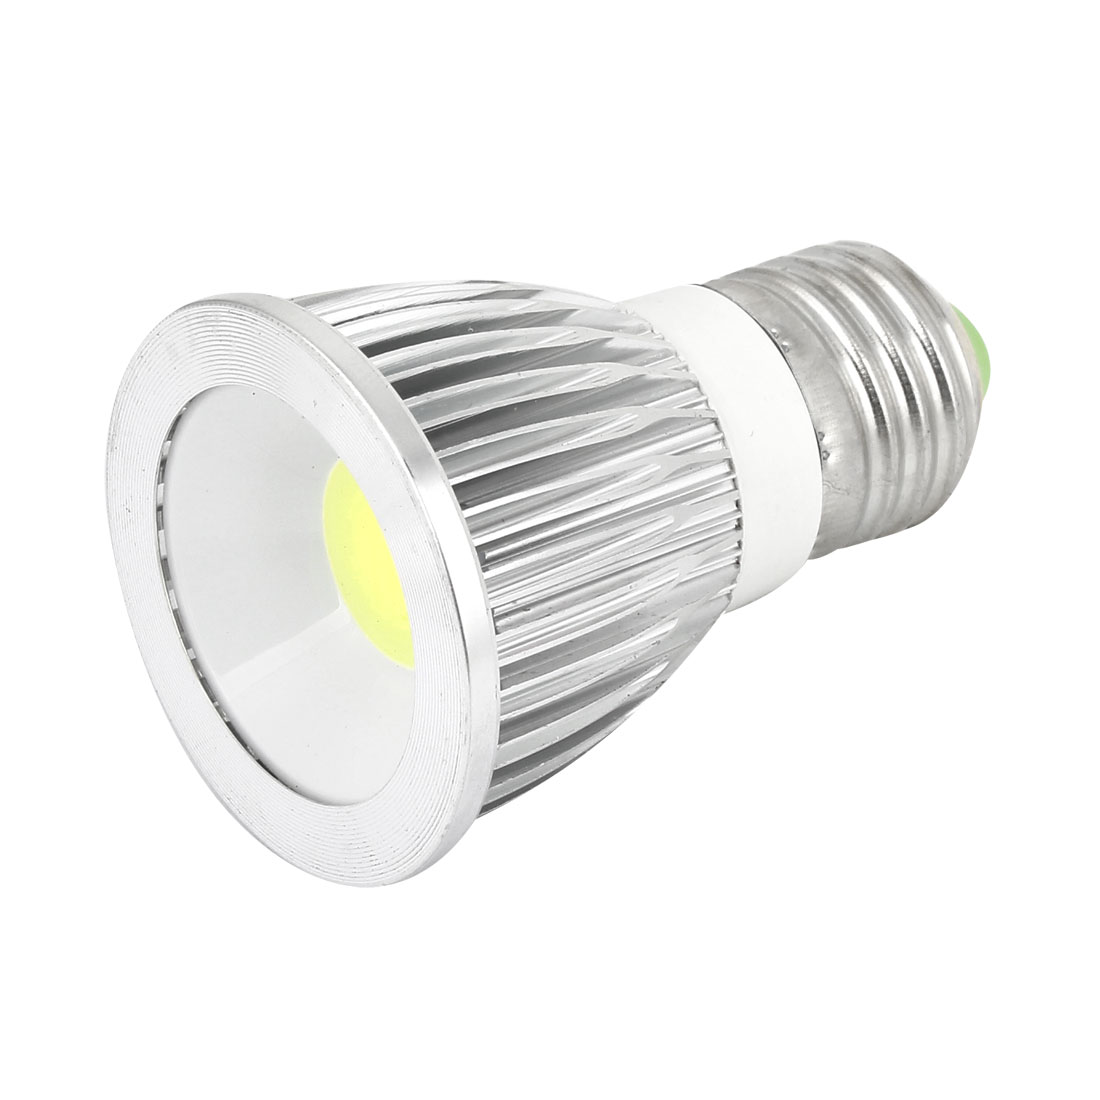 AC 85-265V 9W 600-650LM E27 Dimmable Cool White Light COB LED Downlight Spotlight